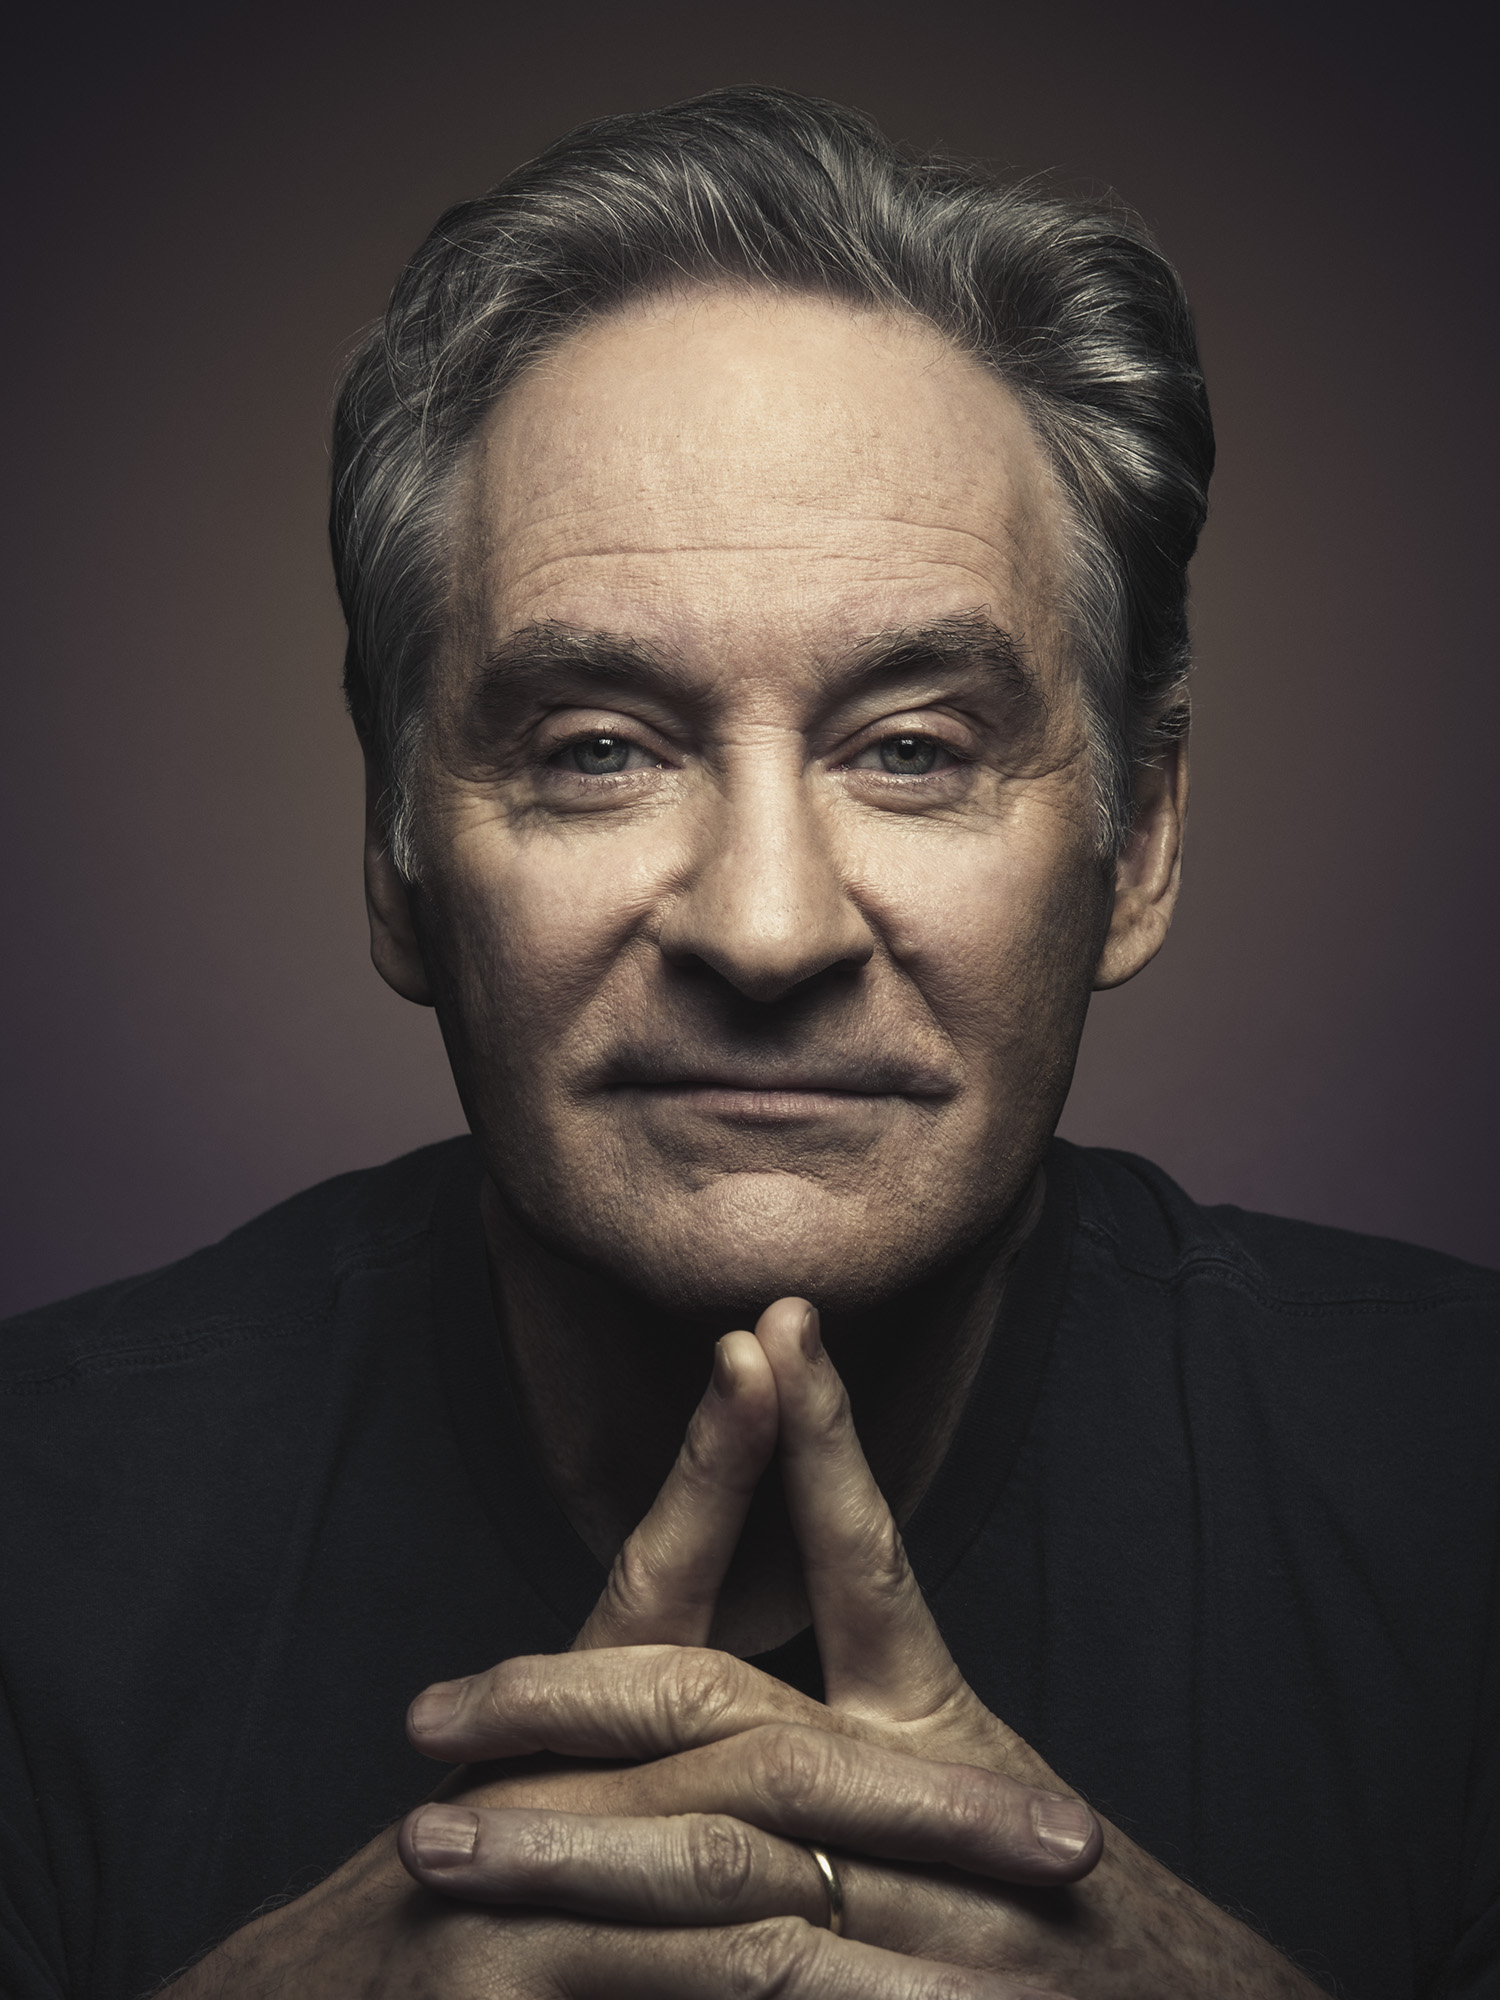 cc2014046 - Kevin Kline photographed for NY Observer